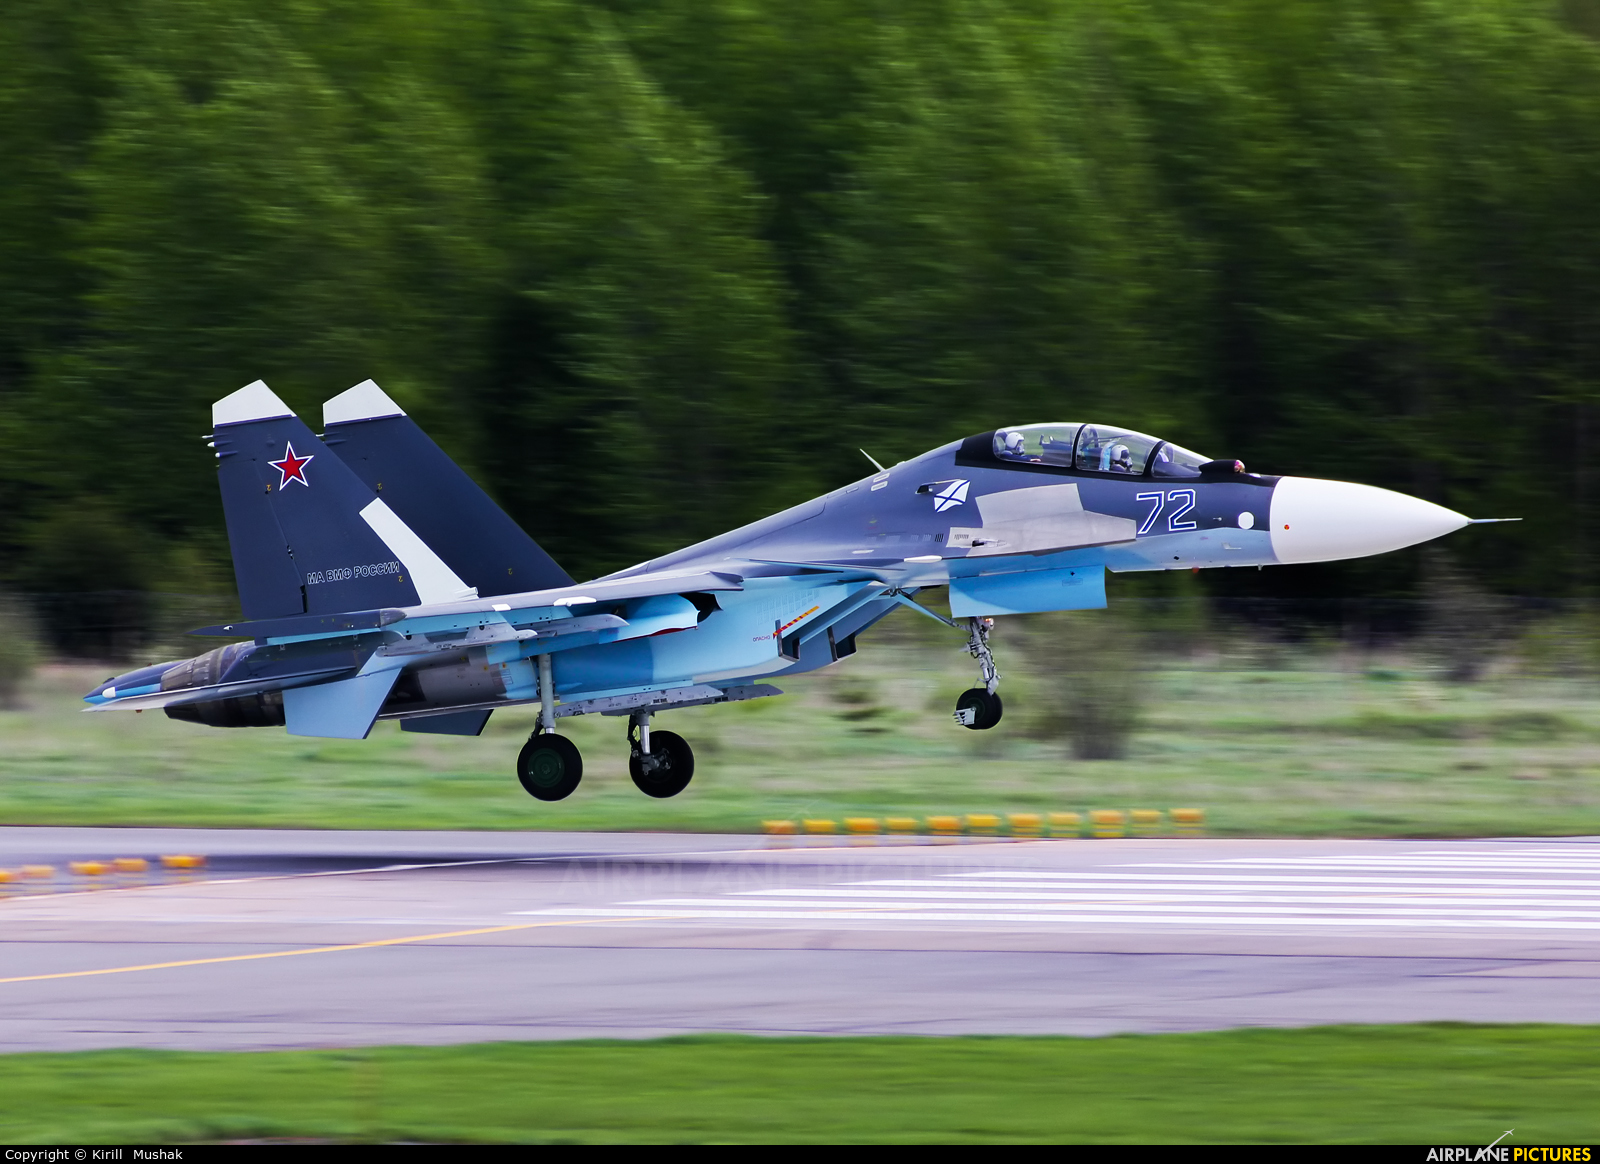 Russia - Navy 72 BLUE aircraft at Undisclosed Location